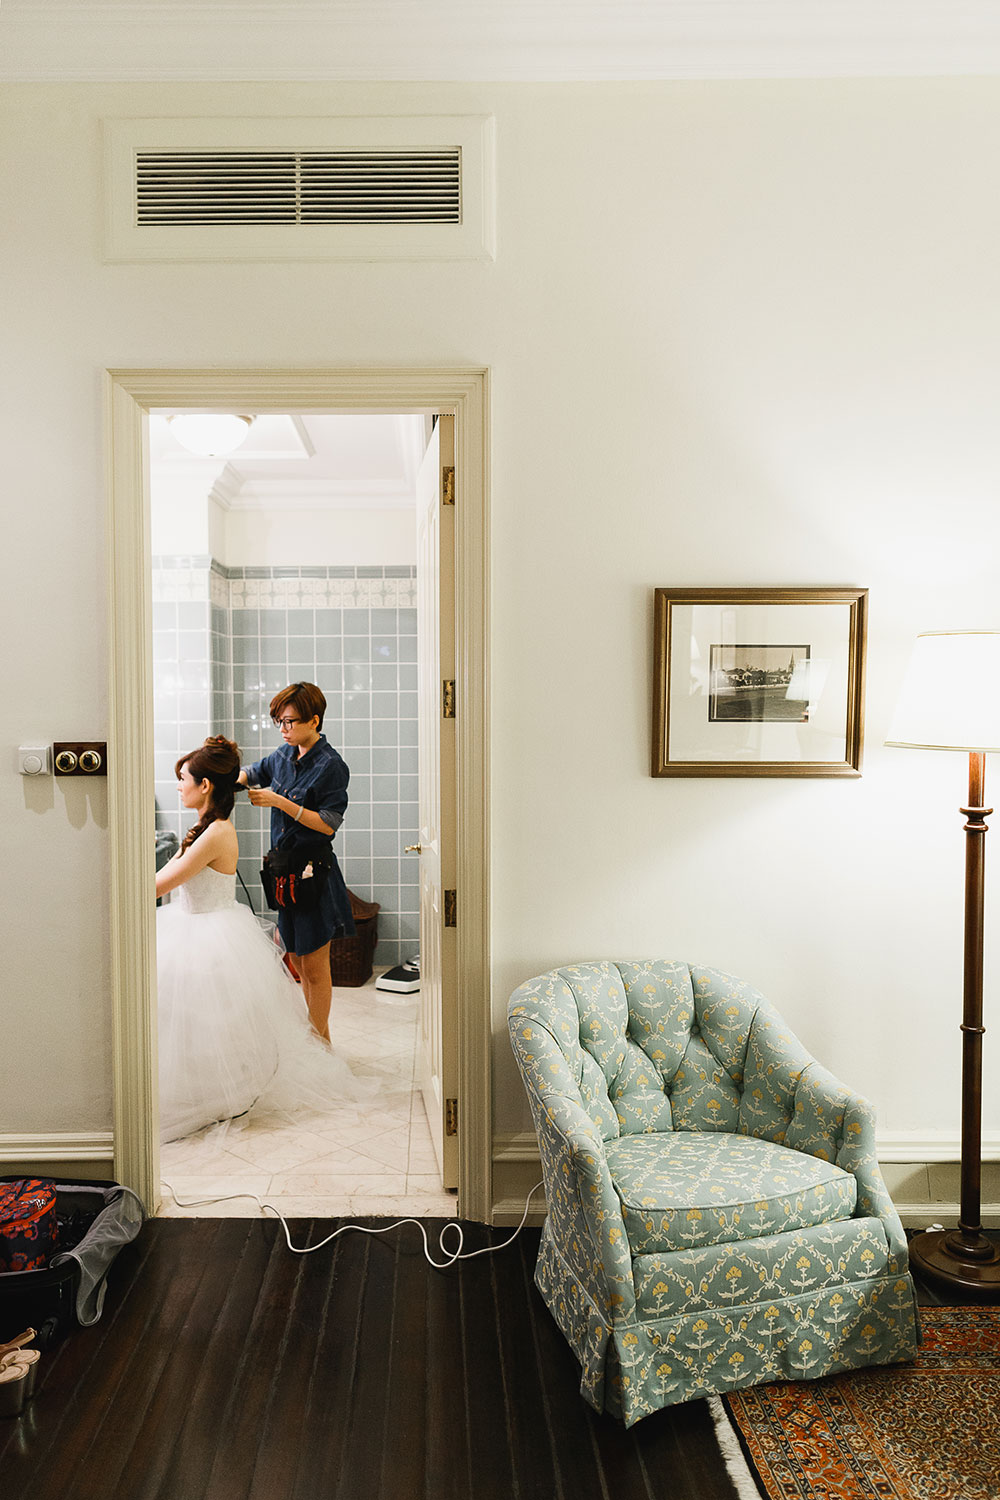 Singaore-Raffles-Hotel-Wedding-bride-bathroom